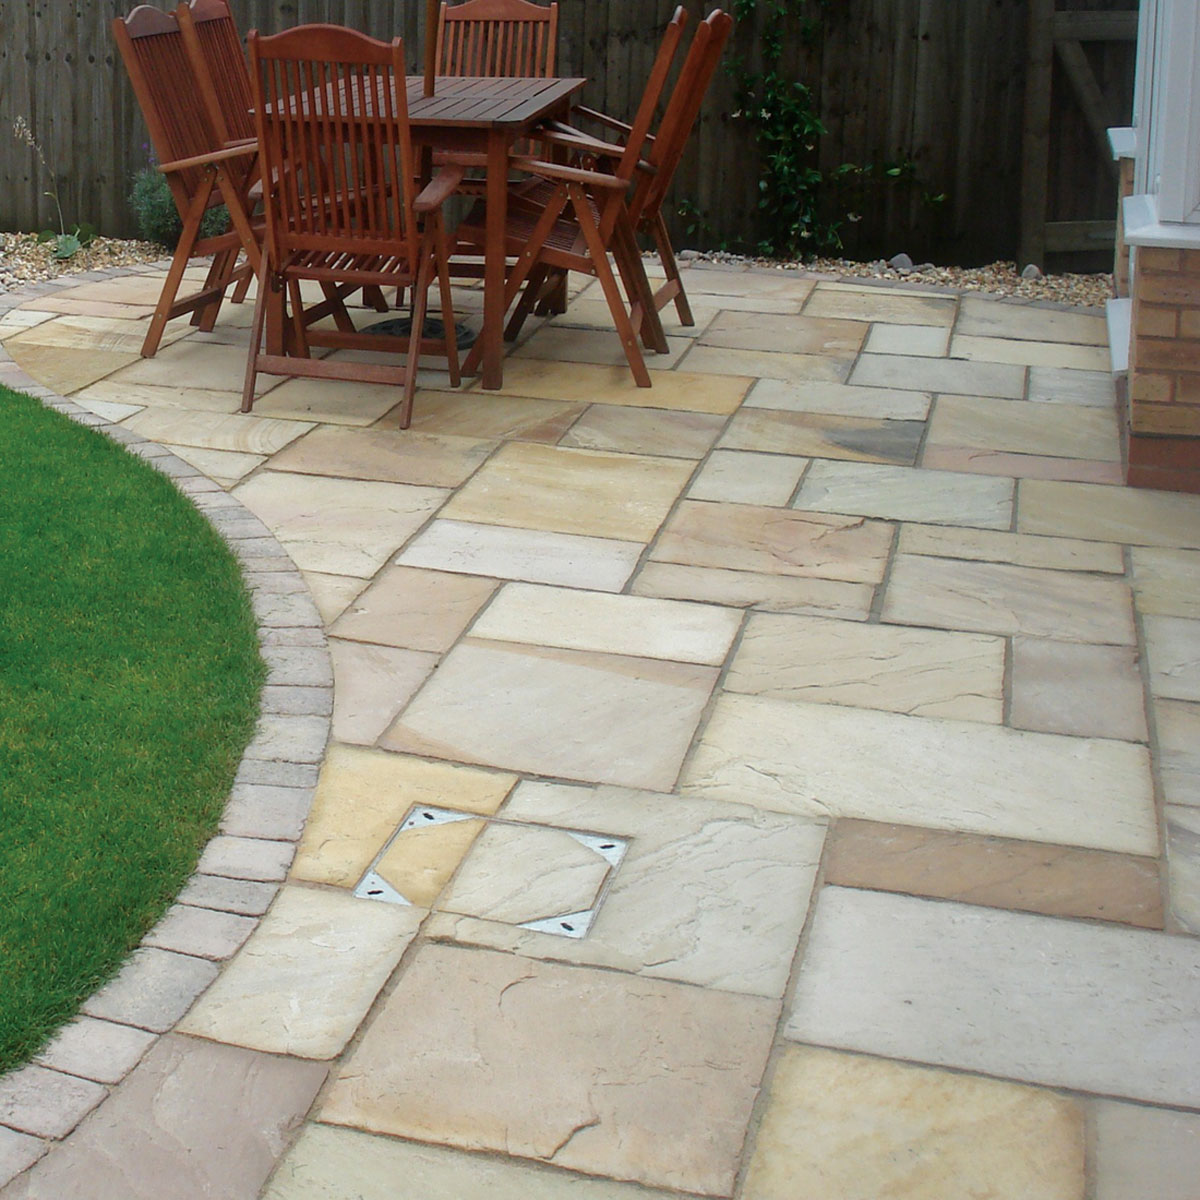 High Quality Zara Fossil Paving Stones Light Cream Buff Sienna Outdoor Flooring Slabs GTA